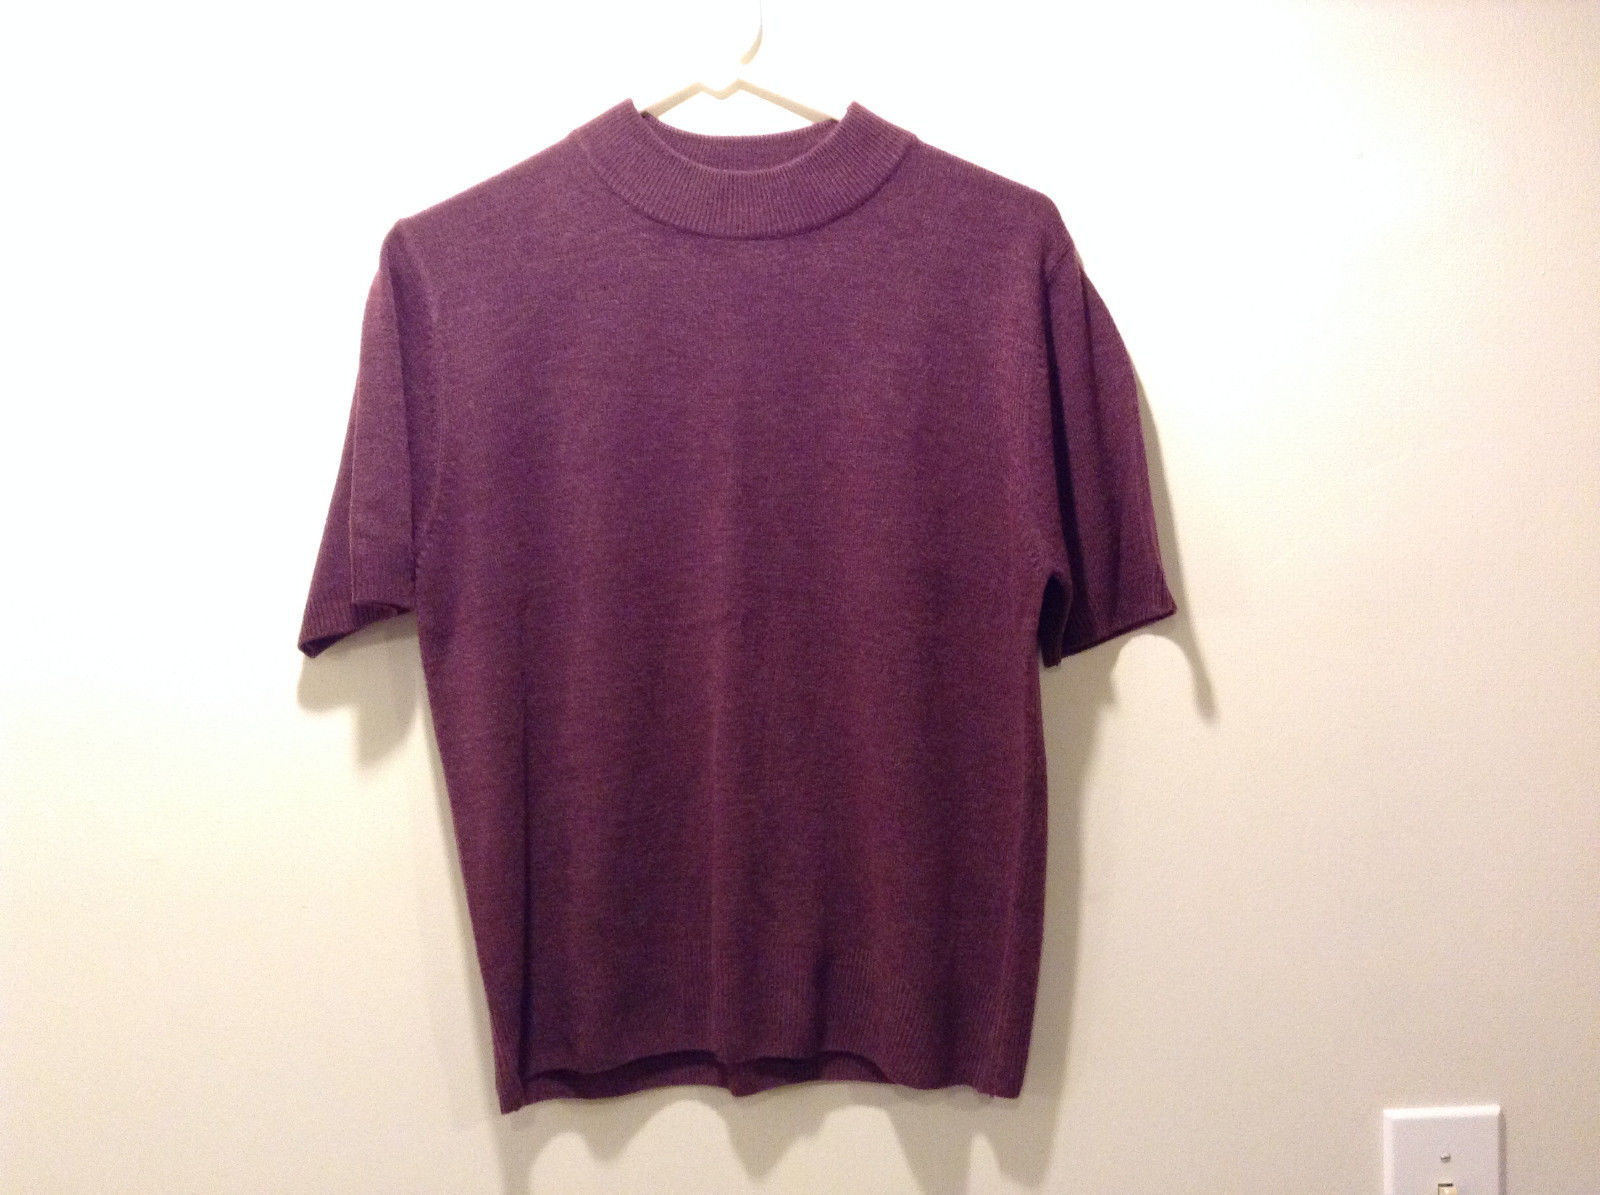 Sag Harbor Women's Size M Mock Neck Sweater w/ Short Sleeves Wine Violet Purple